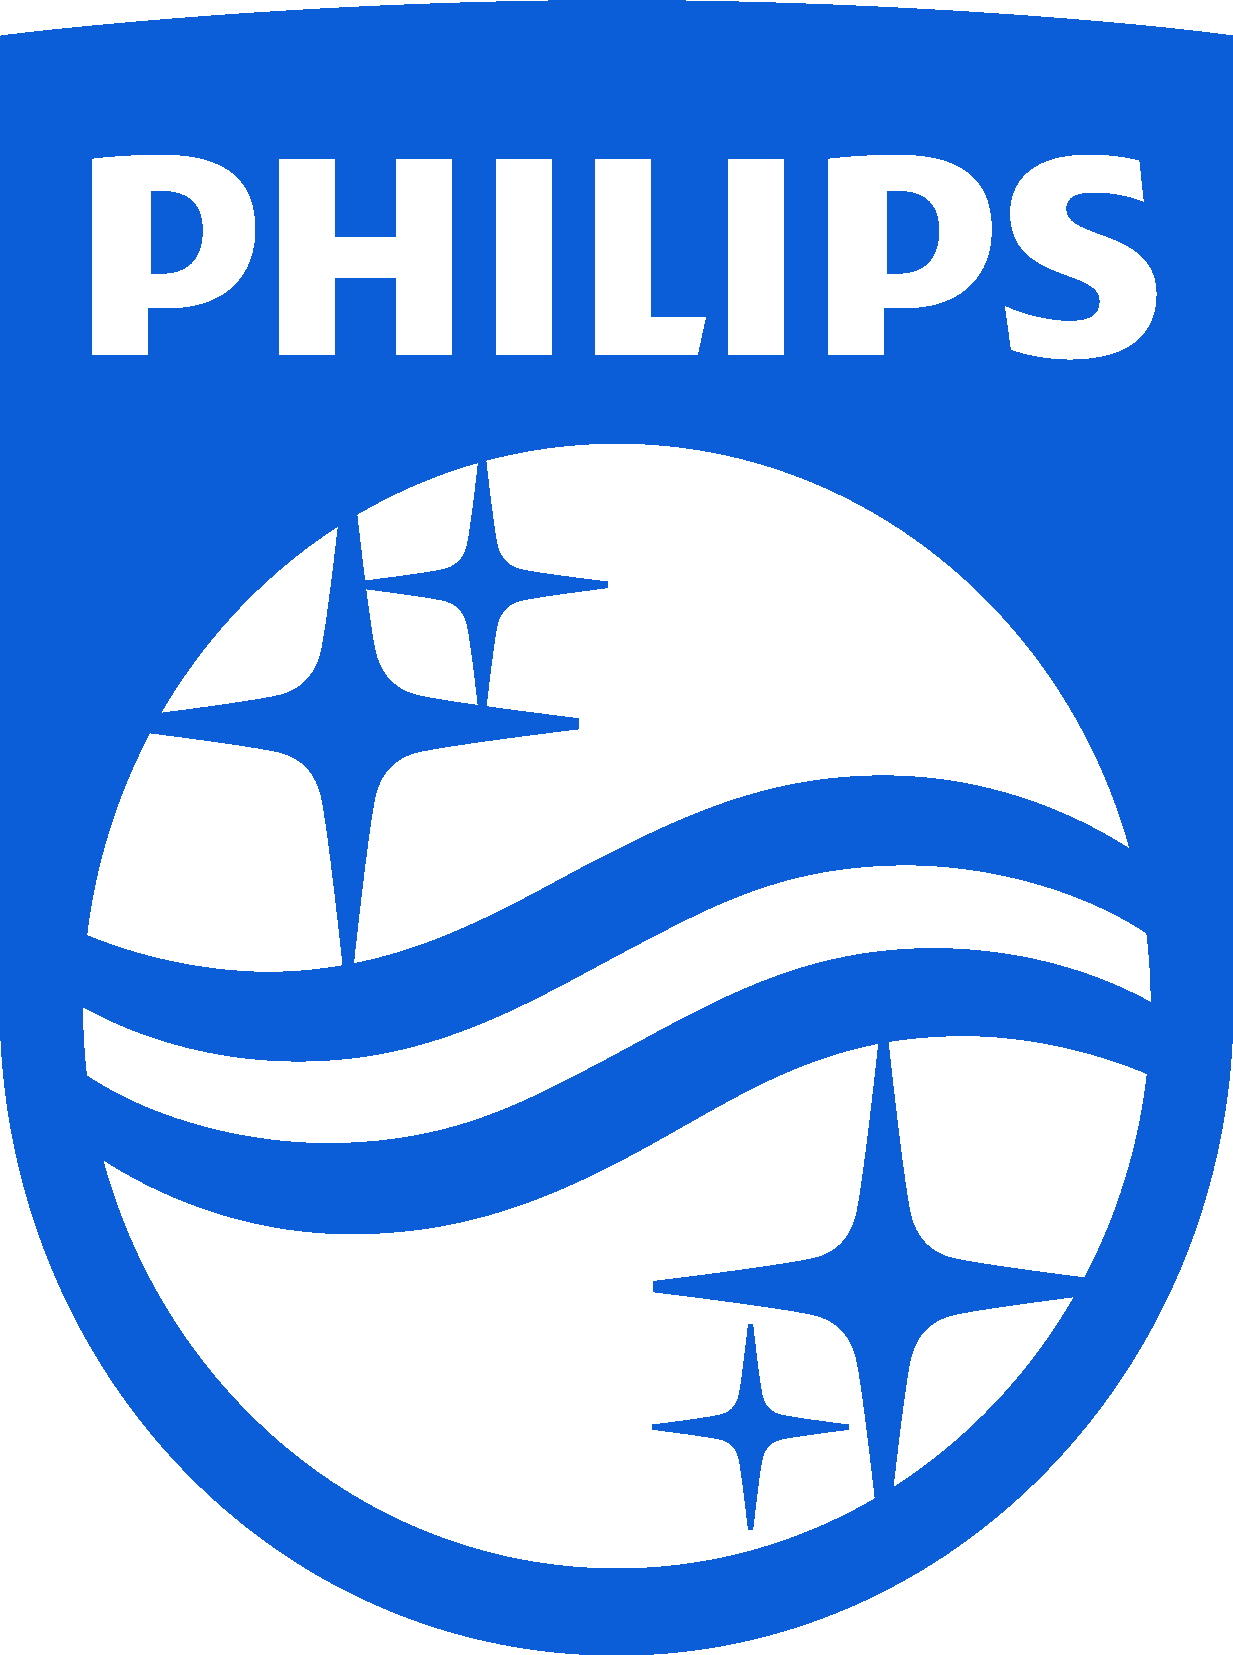 philips-logo-new.png